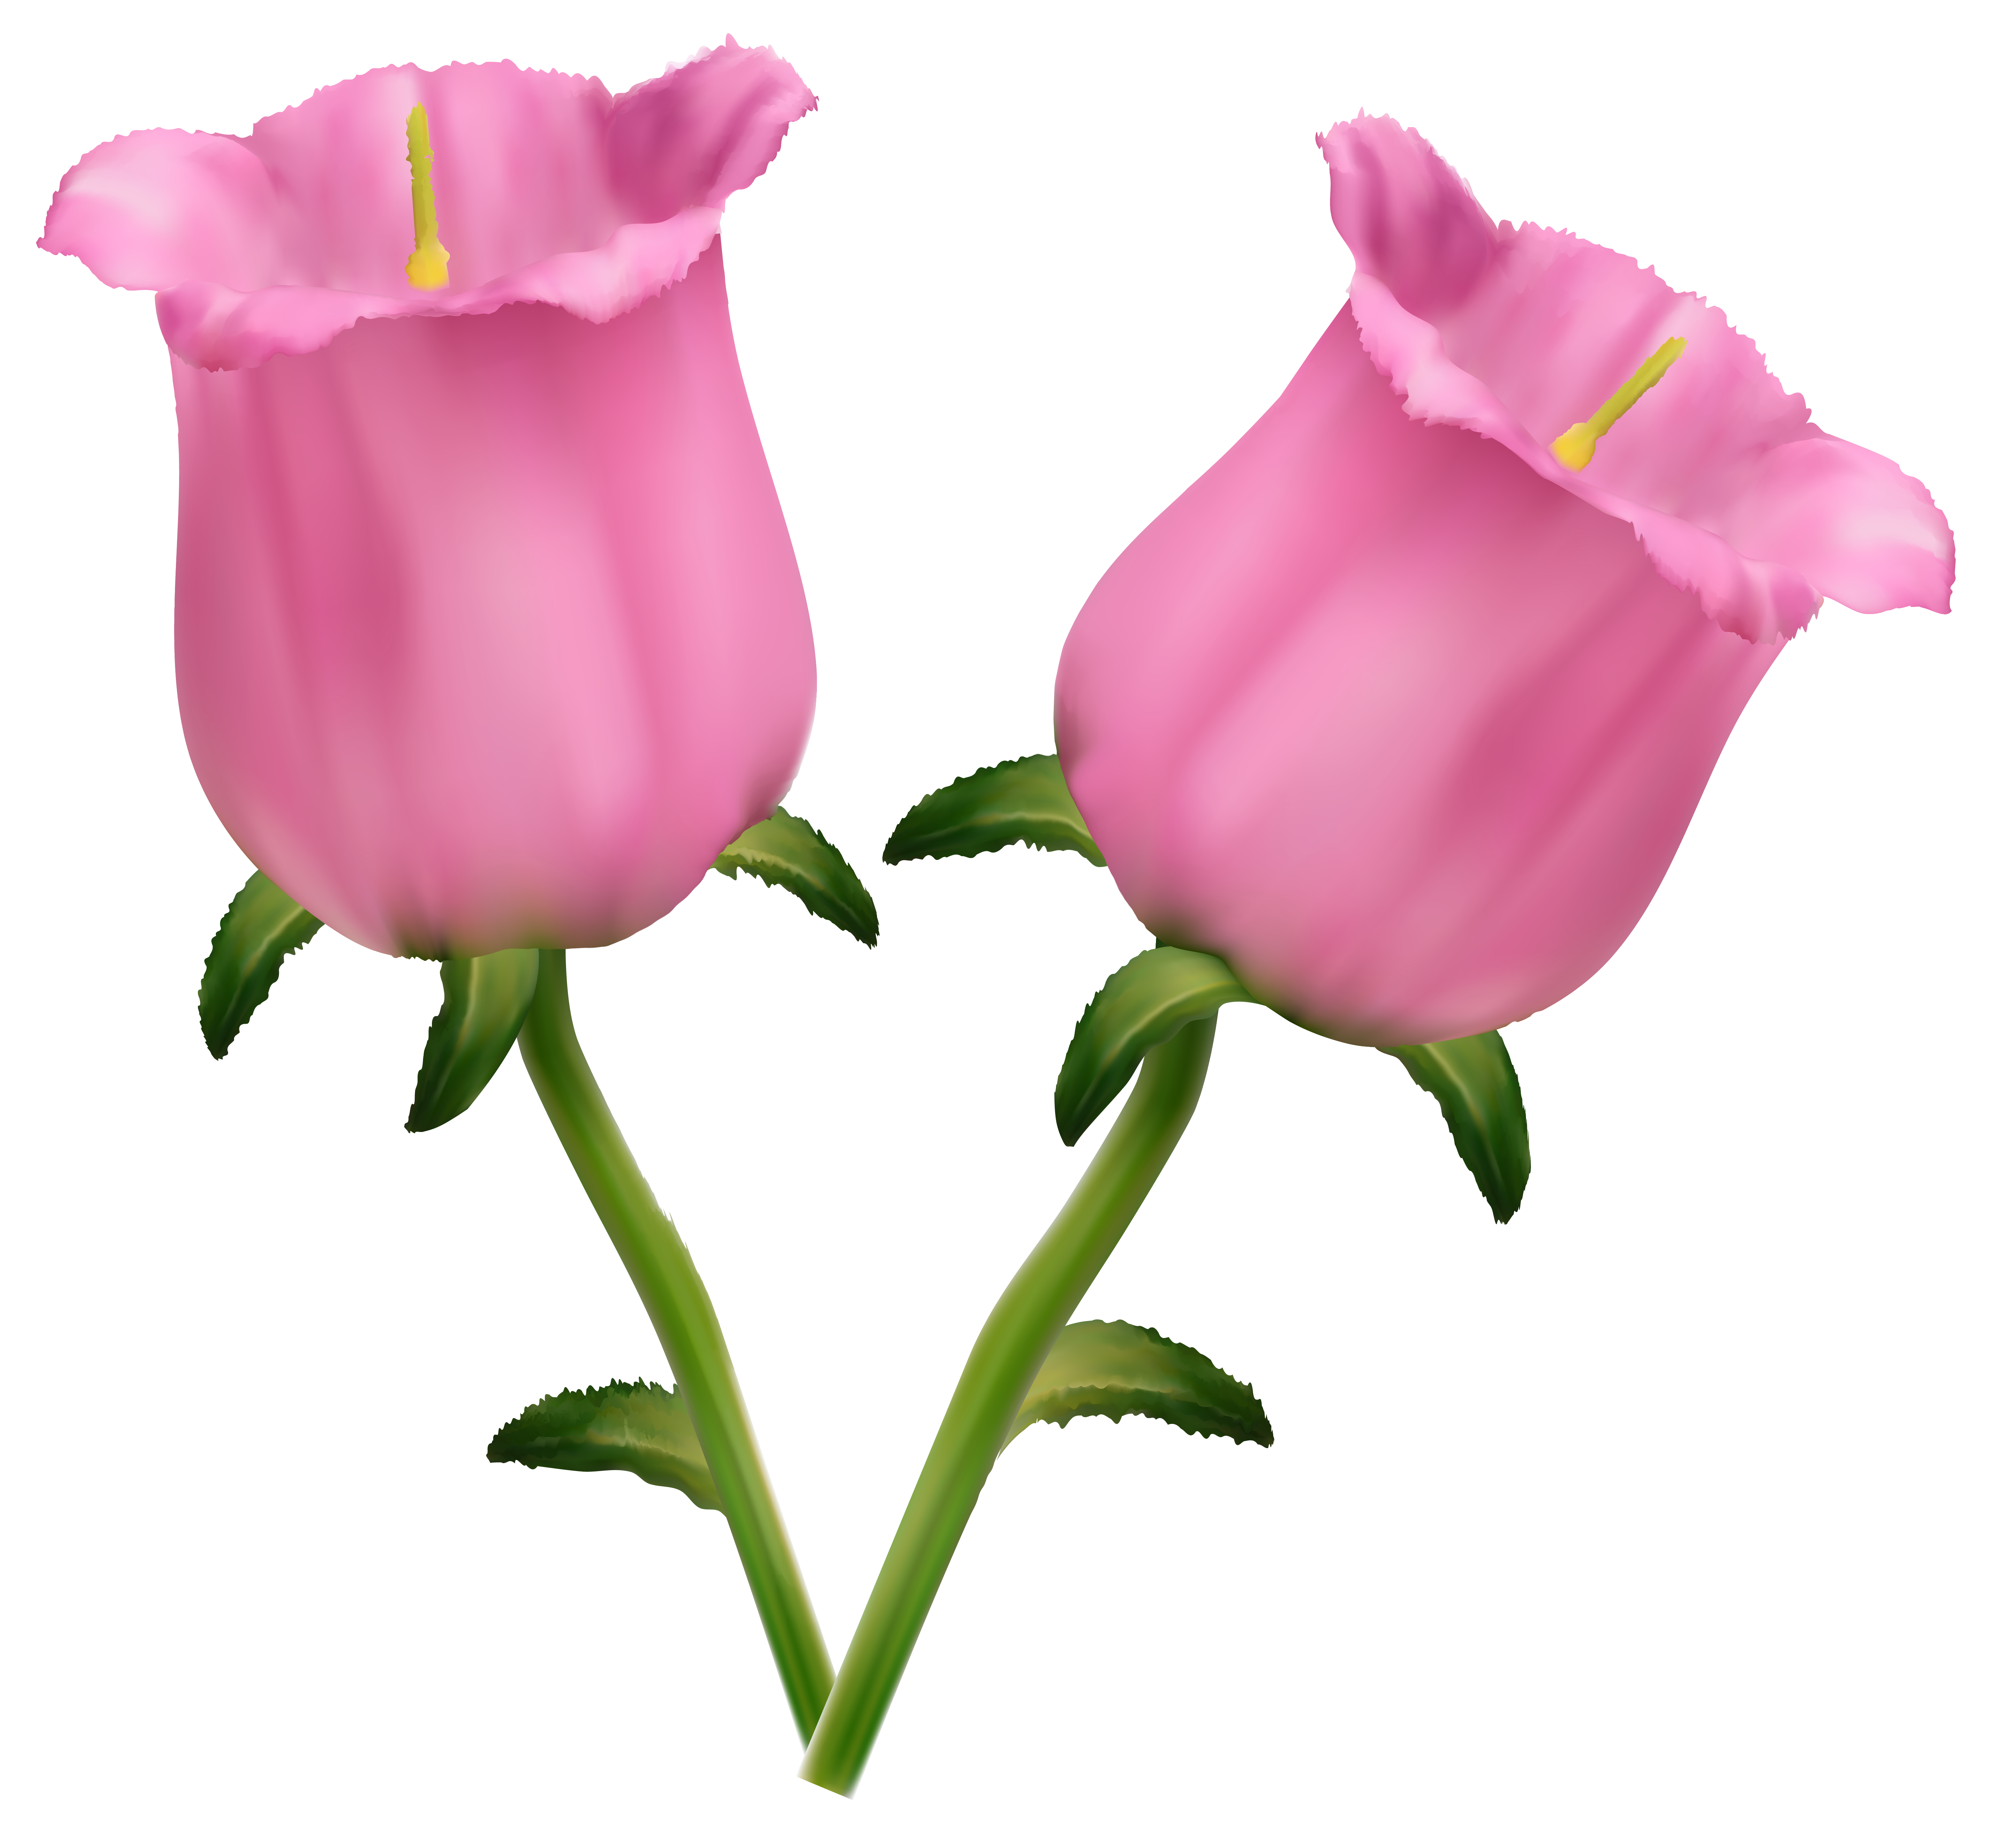 Pink Flowers Bells PNG Clipart Image.